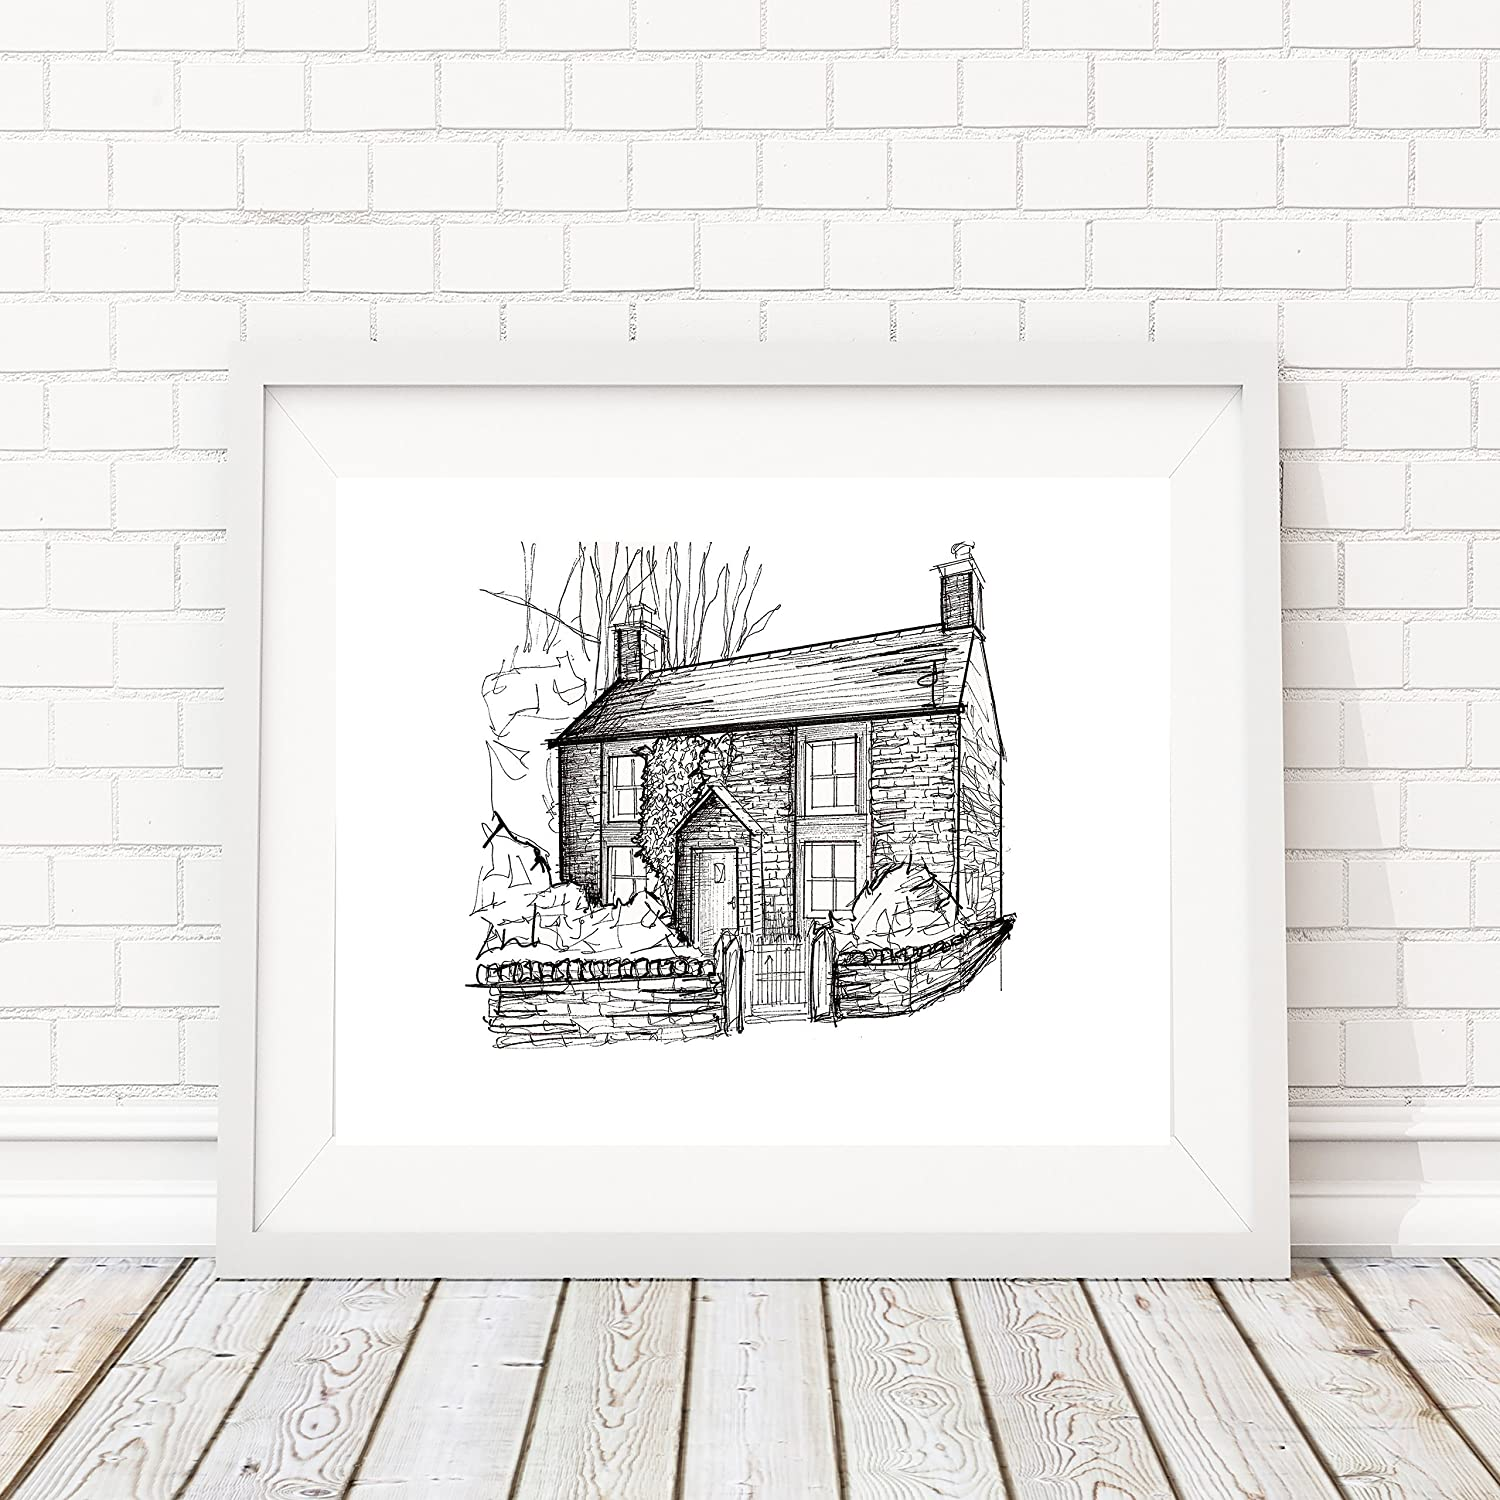 Custom Personalized Pen and Ink Stylistic House/Residential Portrait | 8x10 Hand Sketched Artwork